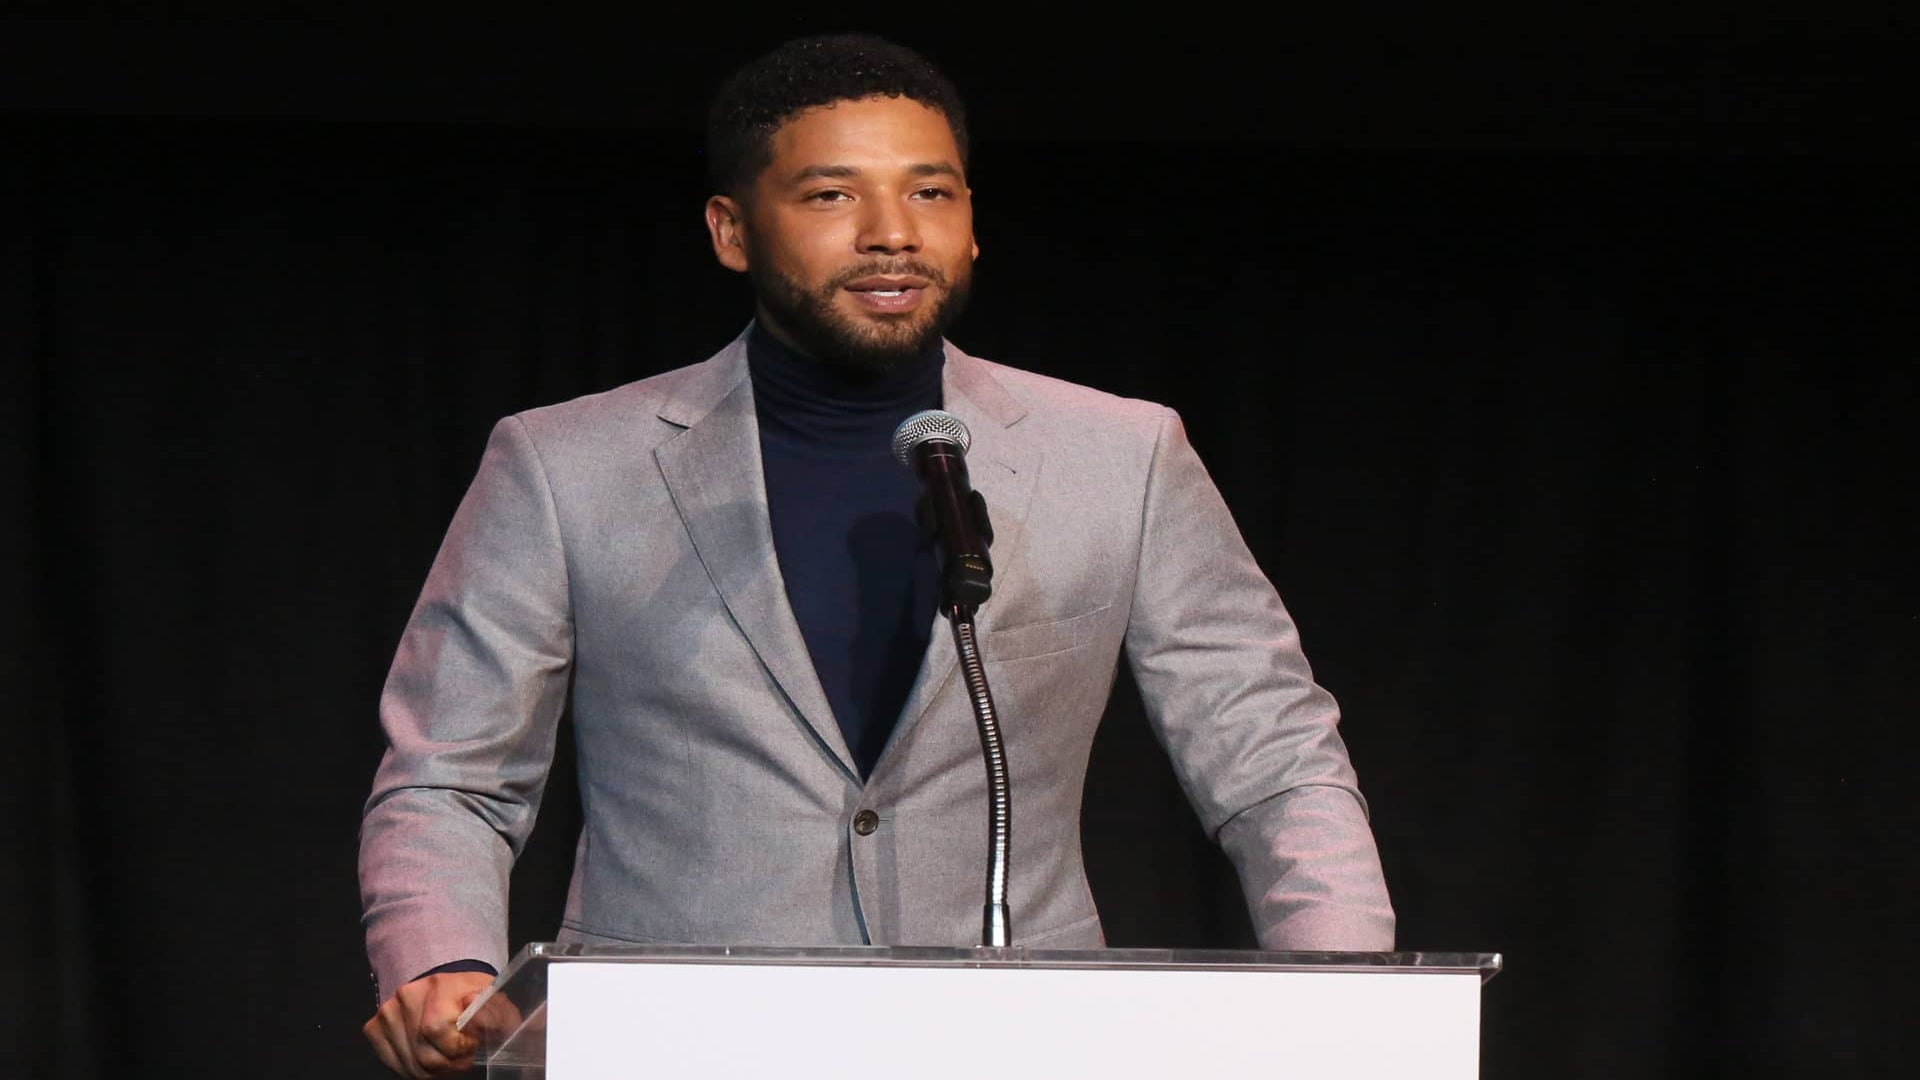 Jussie Smollett Is 'Going Through It,' Loni Love Says After Phone Call